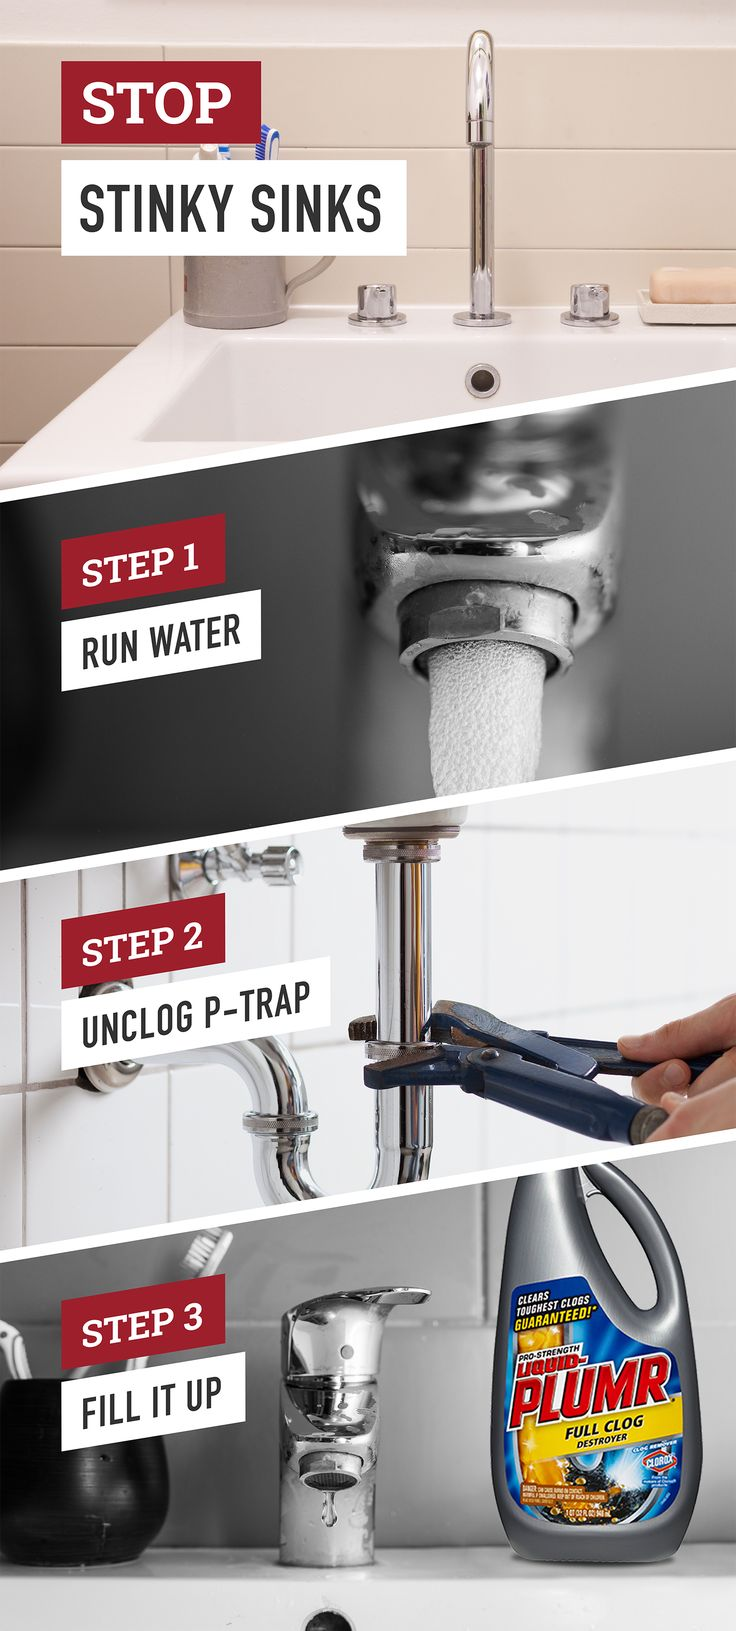 Best way to unclog a toilet - Nobody Wants Their Kitchen Or Bathroom Sink Smelling Like The Sewer Follow These Simple Steps